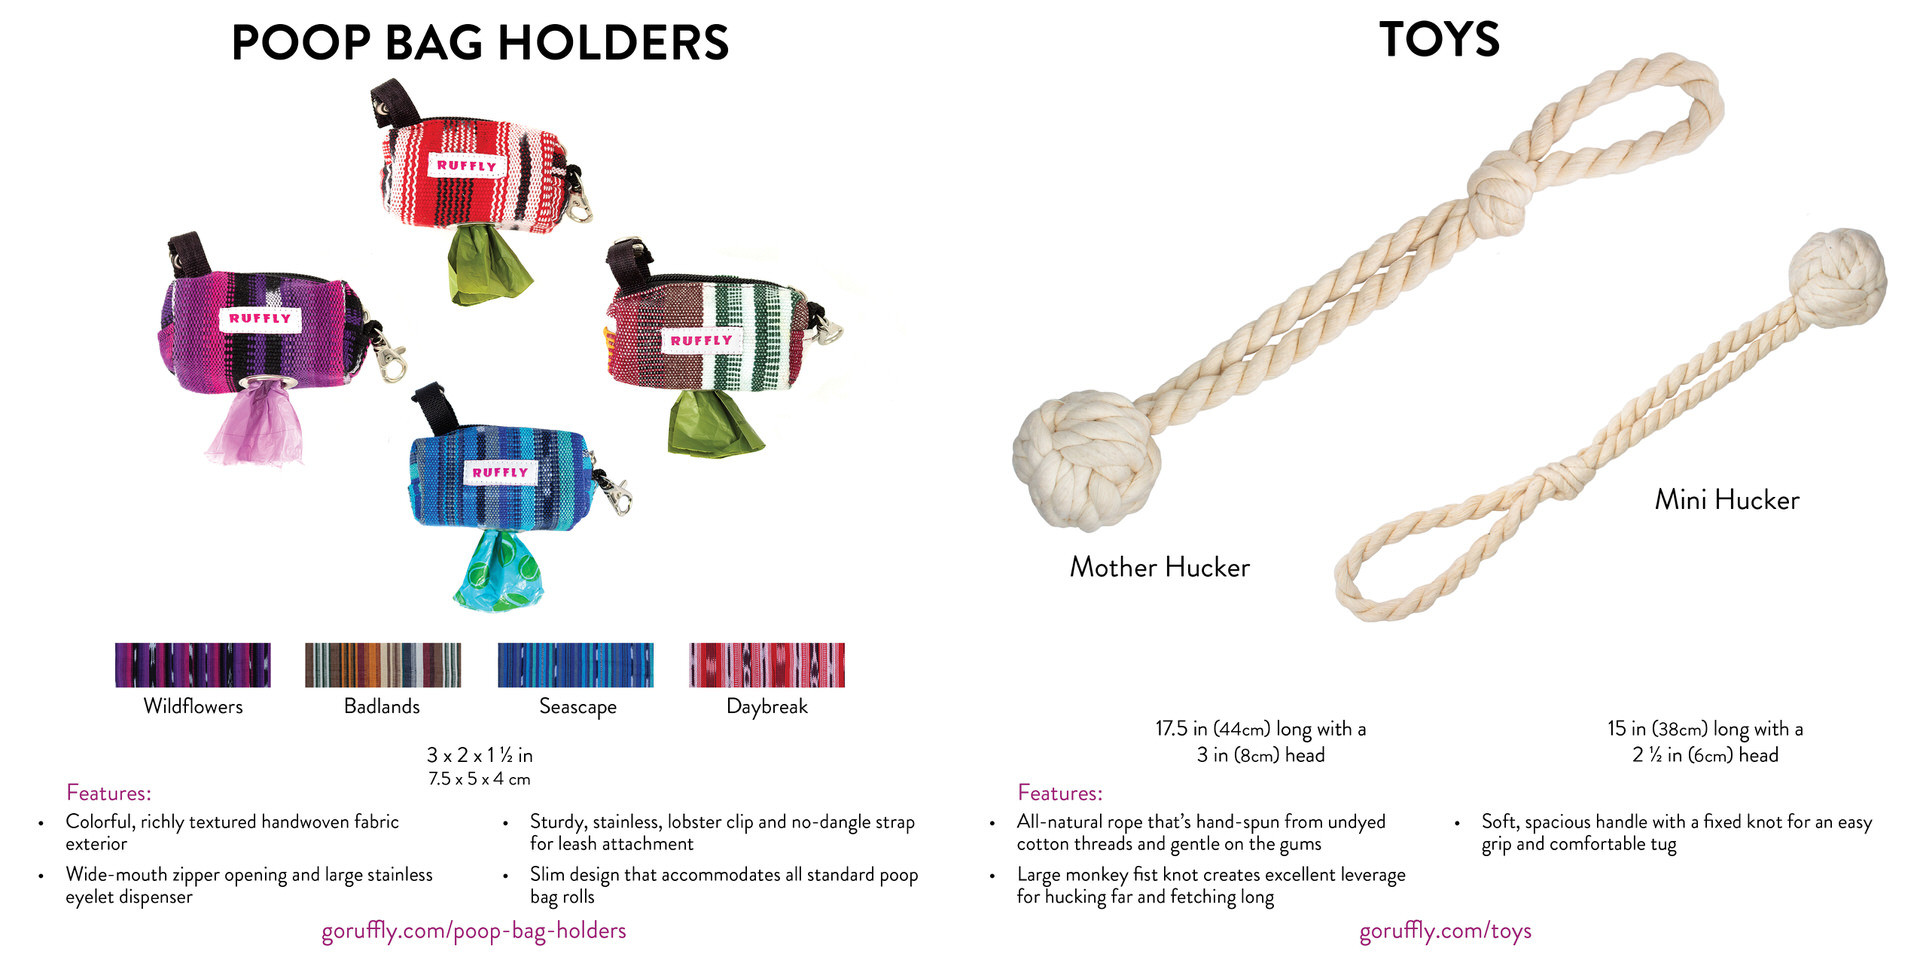 RUFFLY Lookbook – Pages 14 and 15 – Woven Poop Bag Holders and Rope Toys